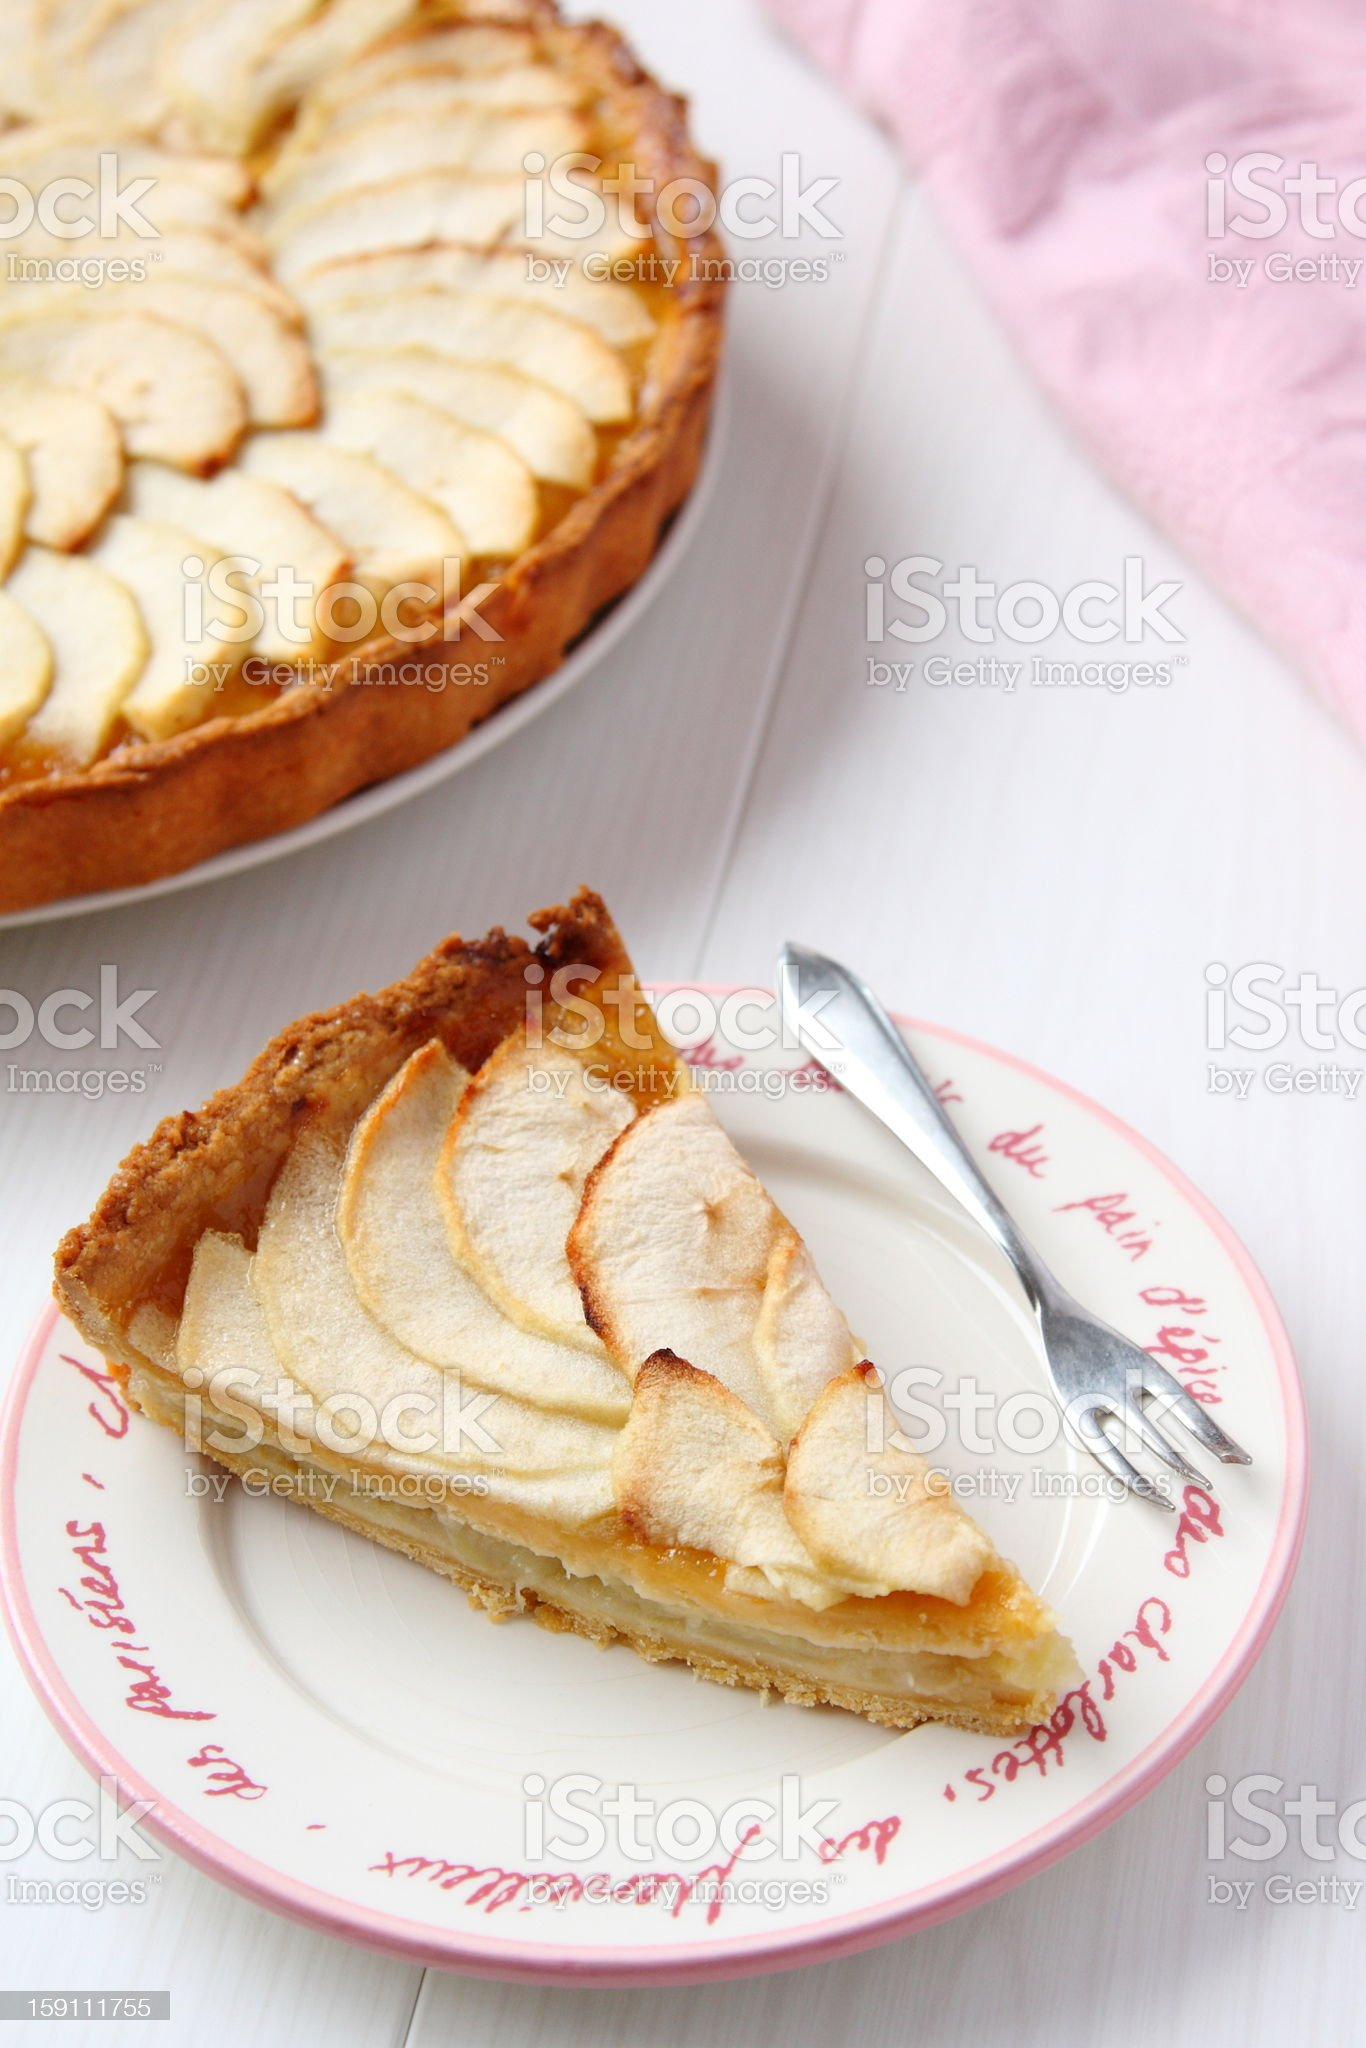 Piece of fresh homemade apple cake royalty-free stock photo